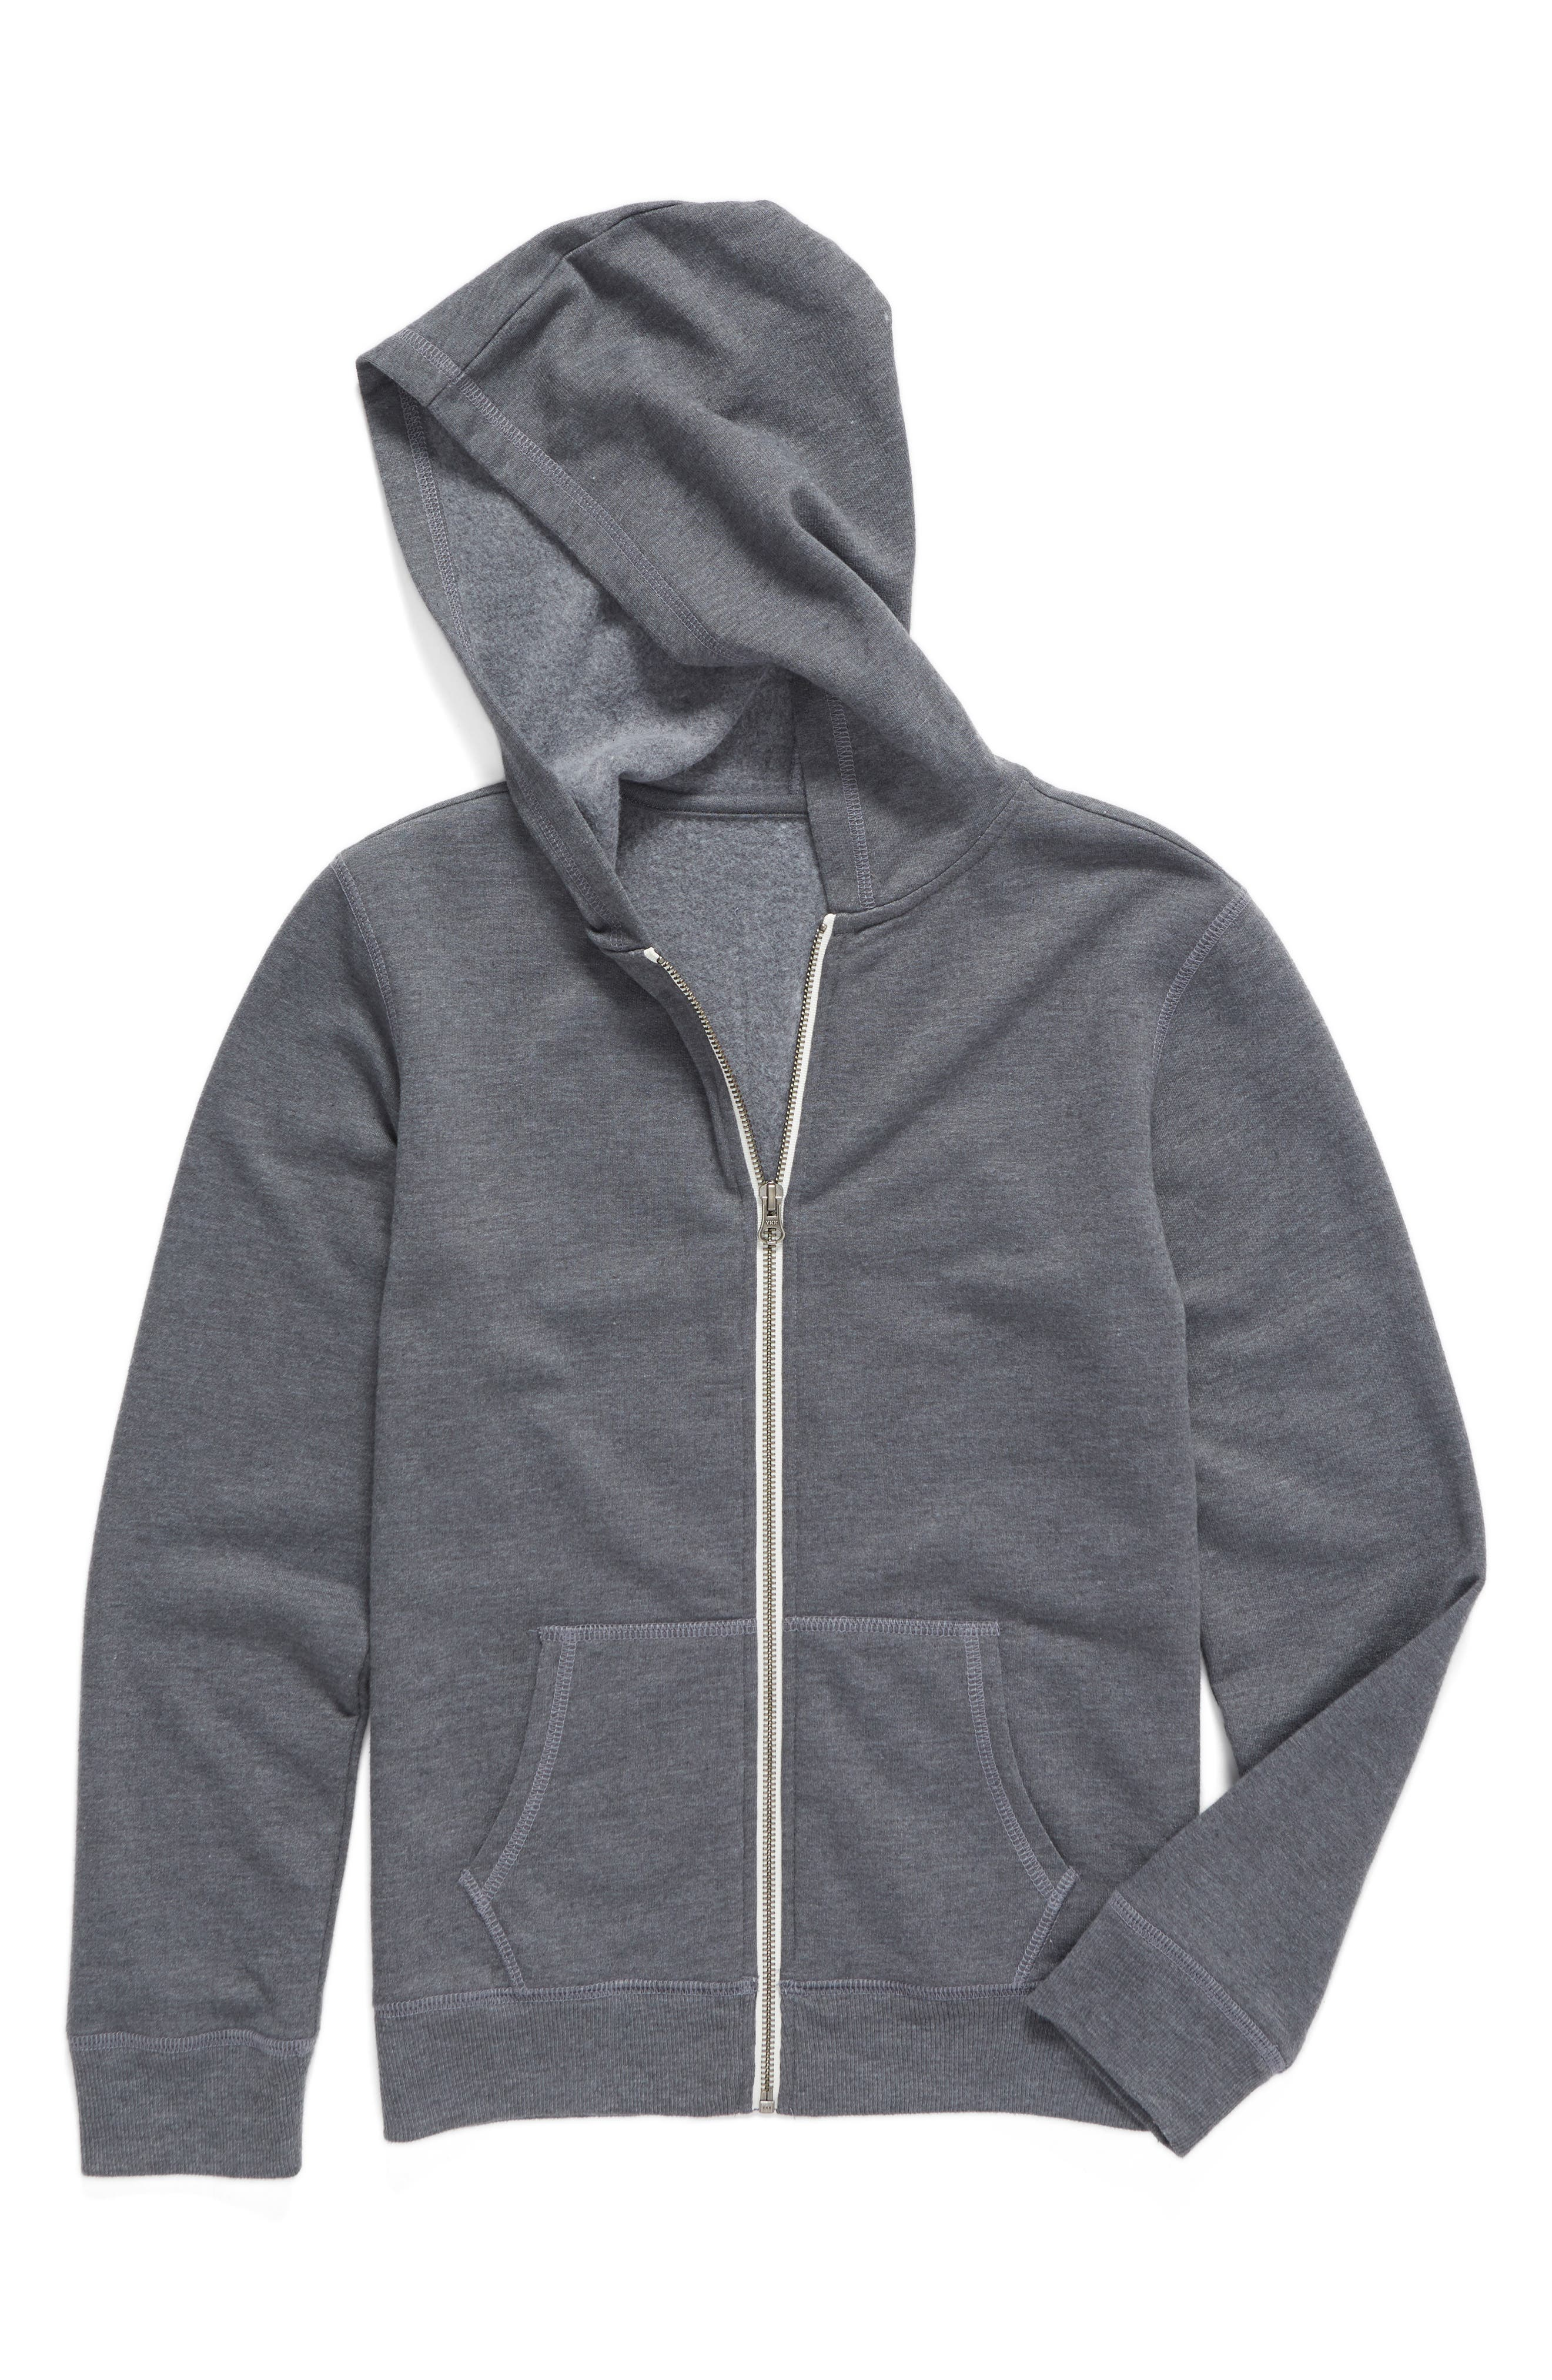 Main Image - Tucker + Tate Zip-Up Hooded Sweatshirt (Toddler Boys, Little Boys & Big Boys)